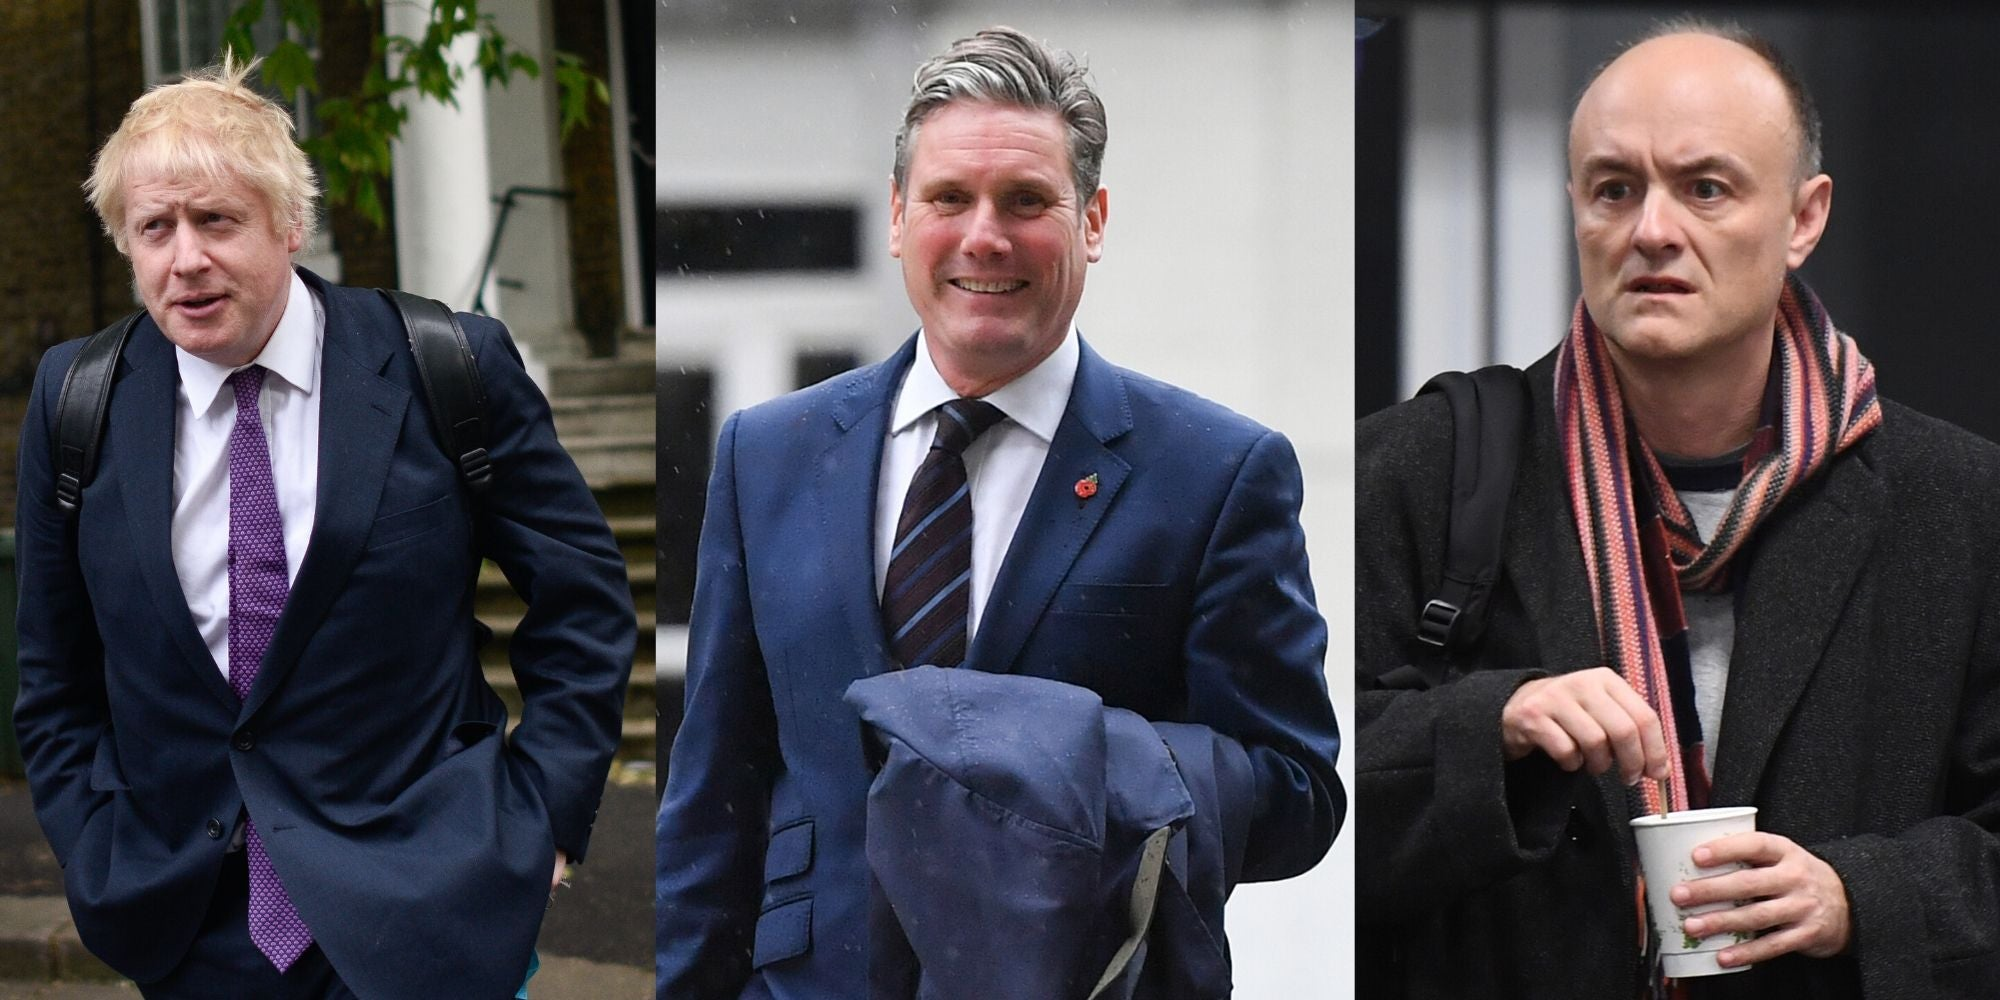 Keir Starmer took just 60 seconds to say what everyone wanted Boris Johnson to say